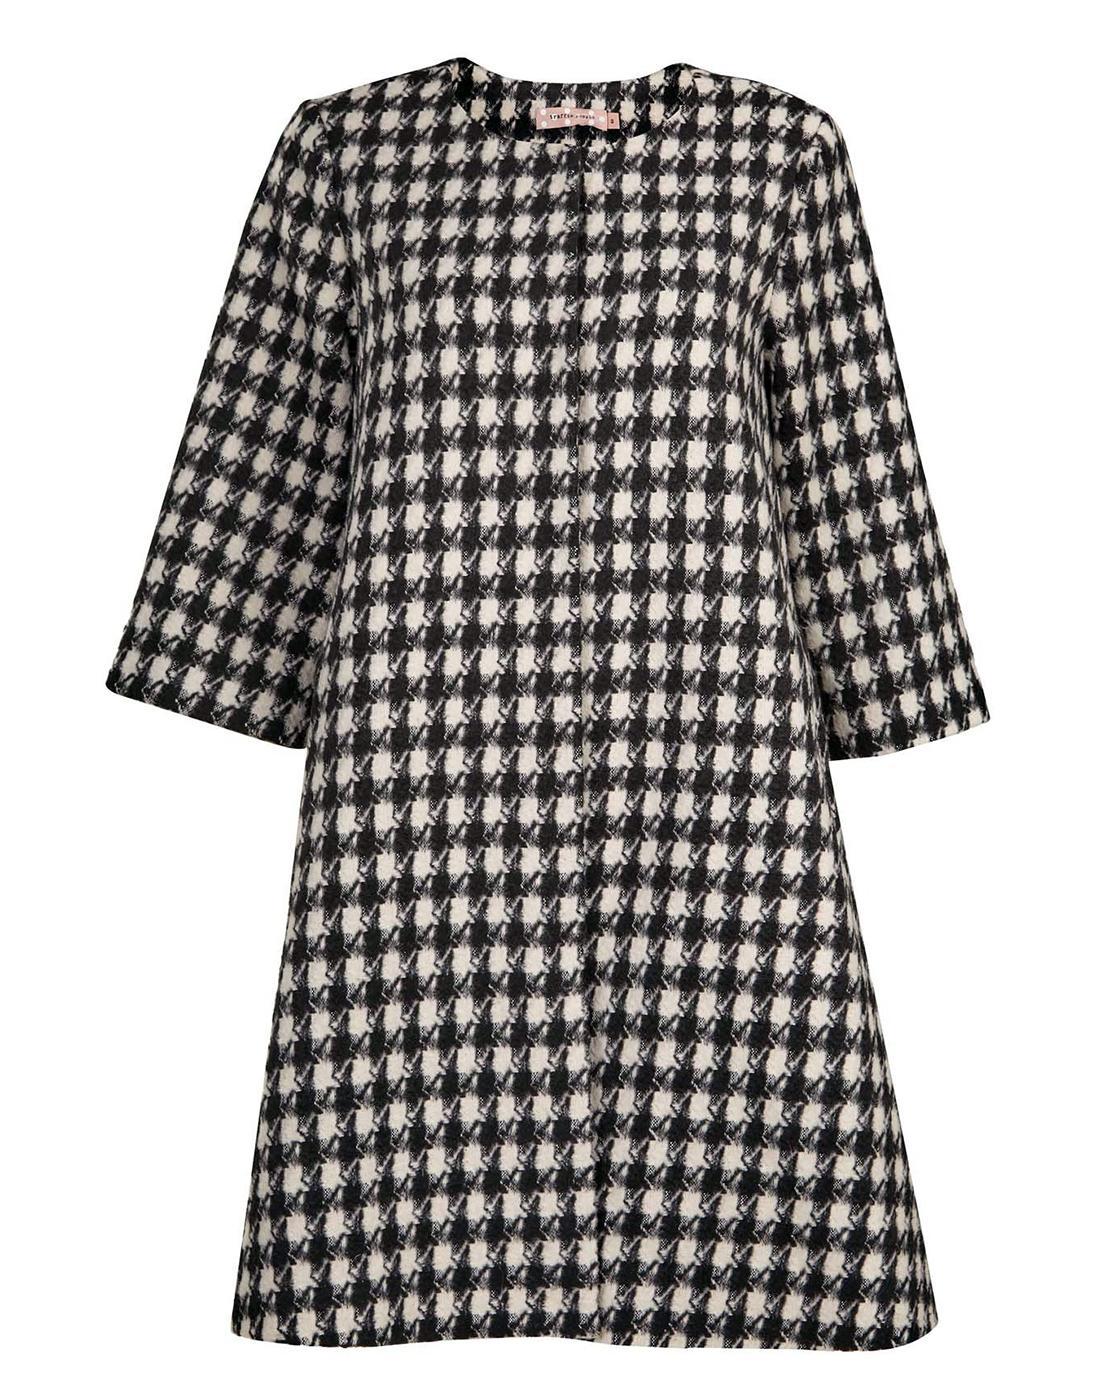 TRAFFIC PEOPLE Retro 60s Mod Dogtooth Swing Coat